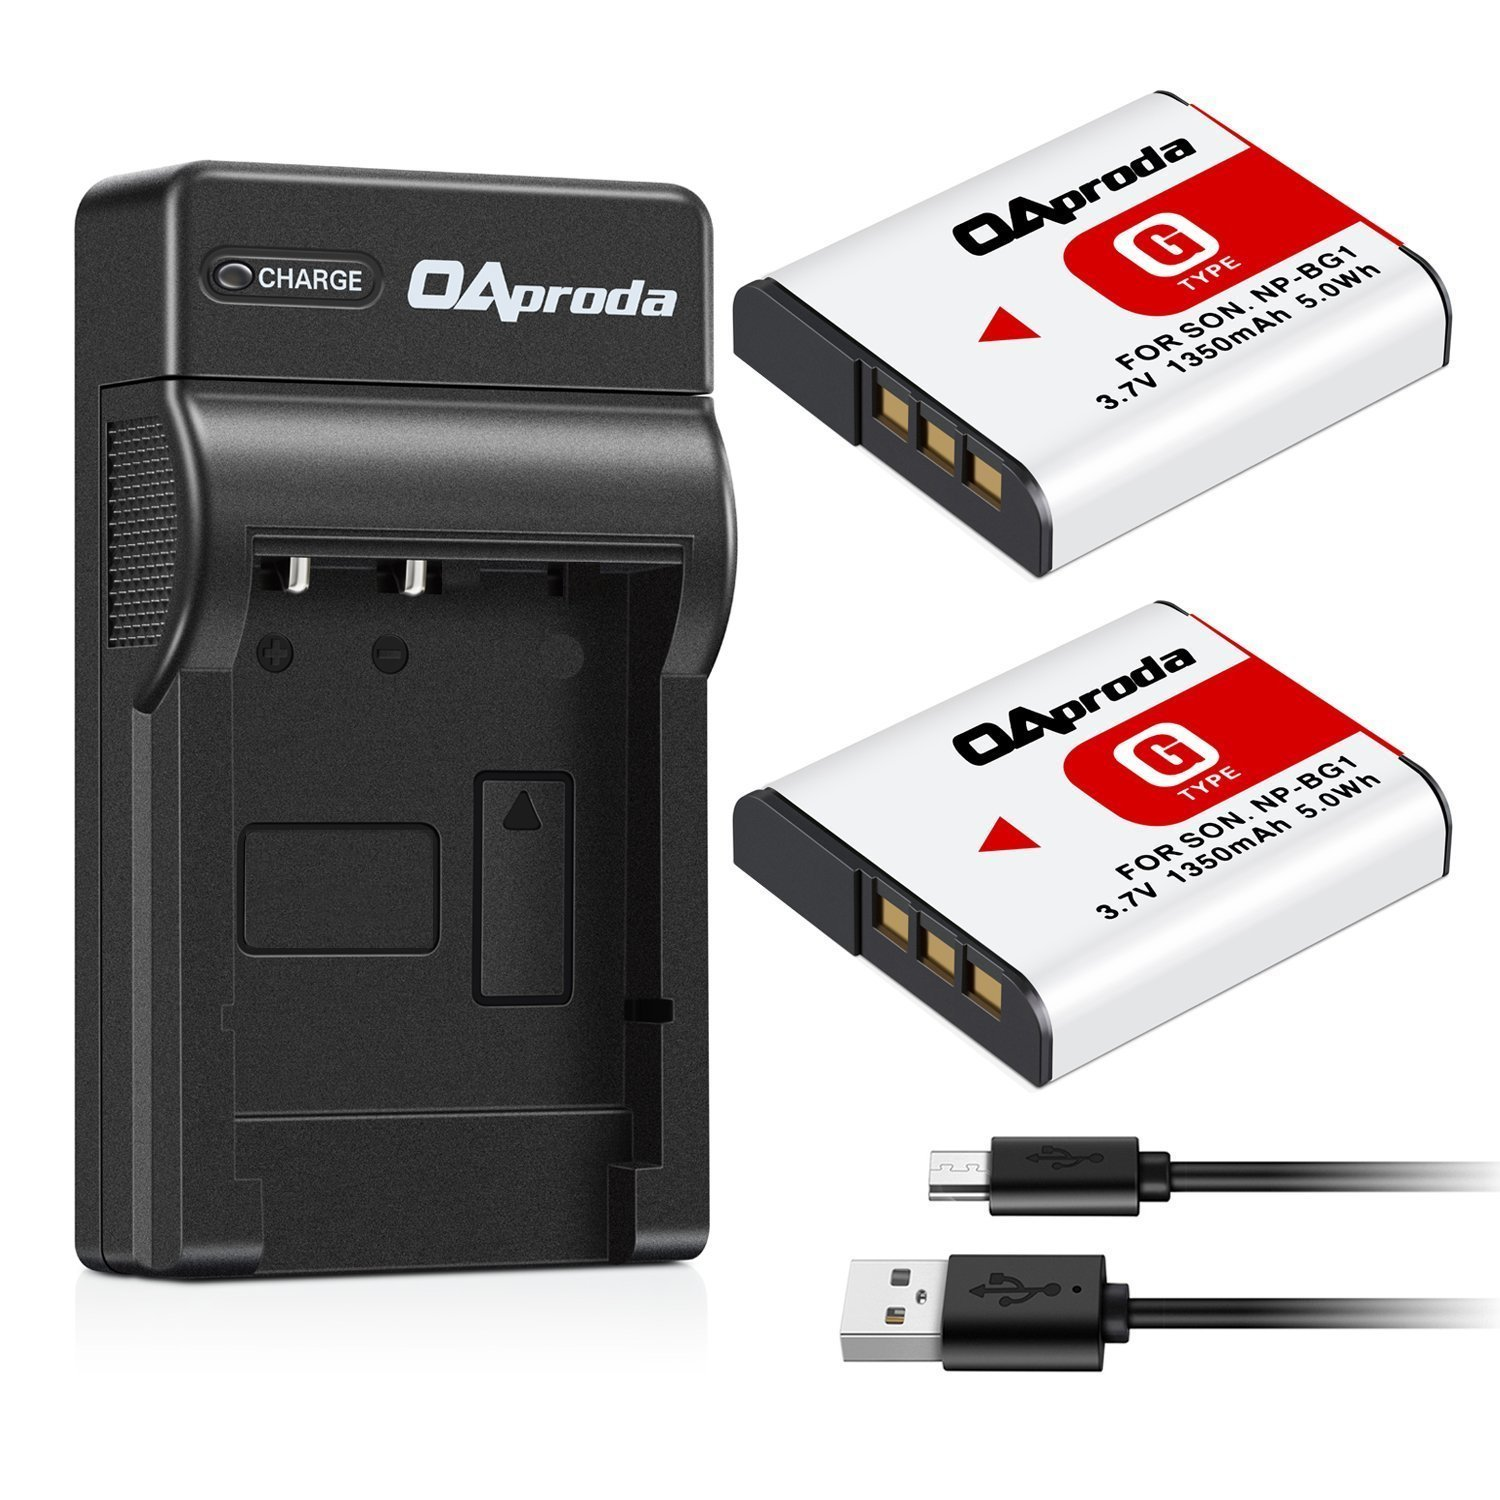 W70 and Ultra Slim Micro USB Battery Charger for Sony NP-FG1 H20 W35 W55 W50 WX1 2 Pack CyberShot DSC-W30 WX10 H70 W80 H90 H55 HX9V H10 H50 OAproda Replacement NP-BG1 Battery